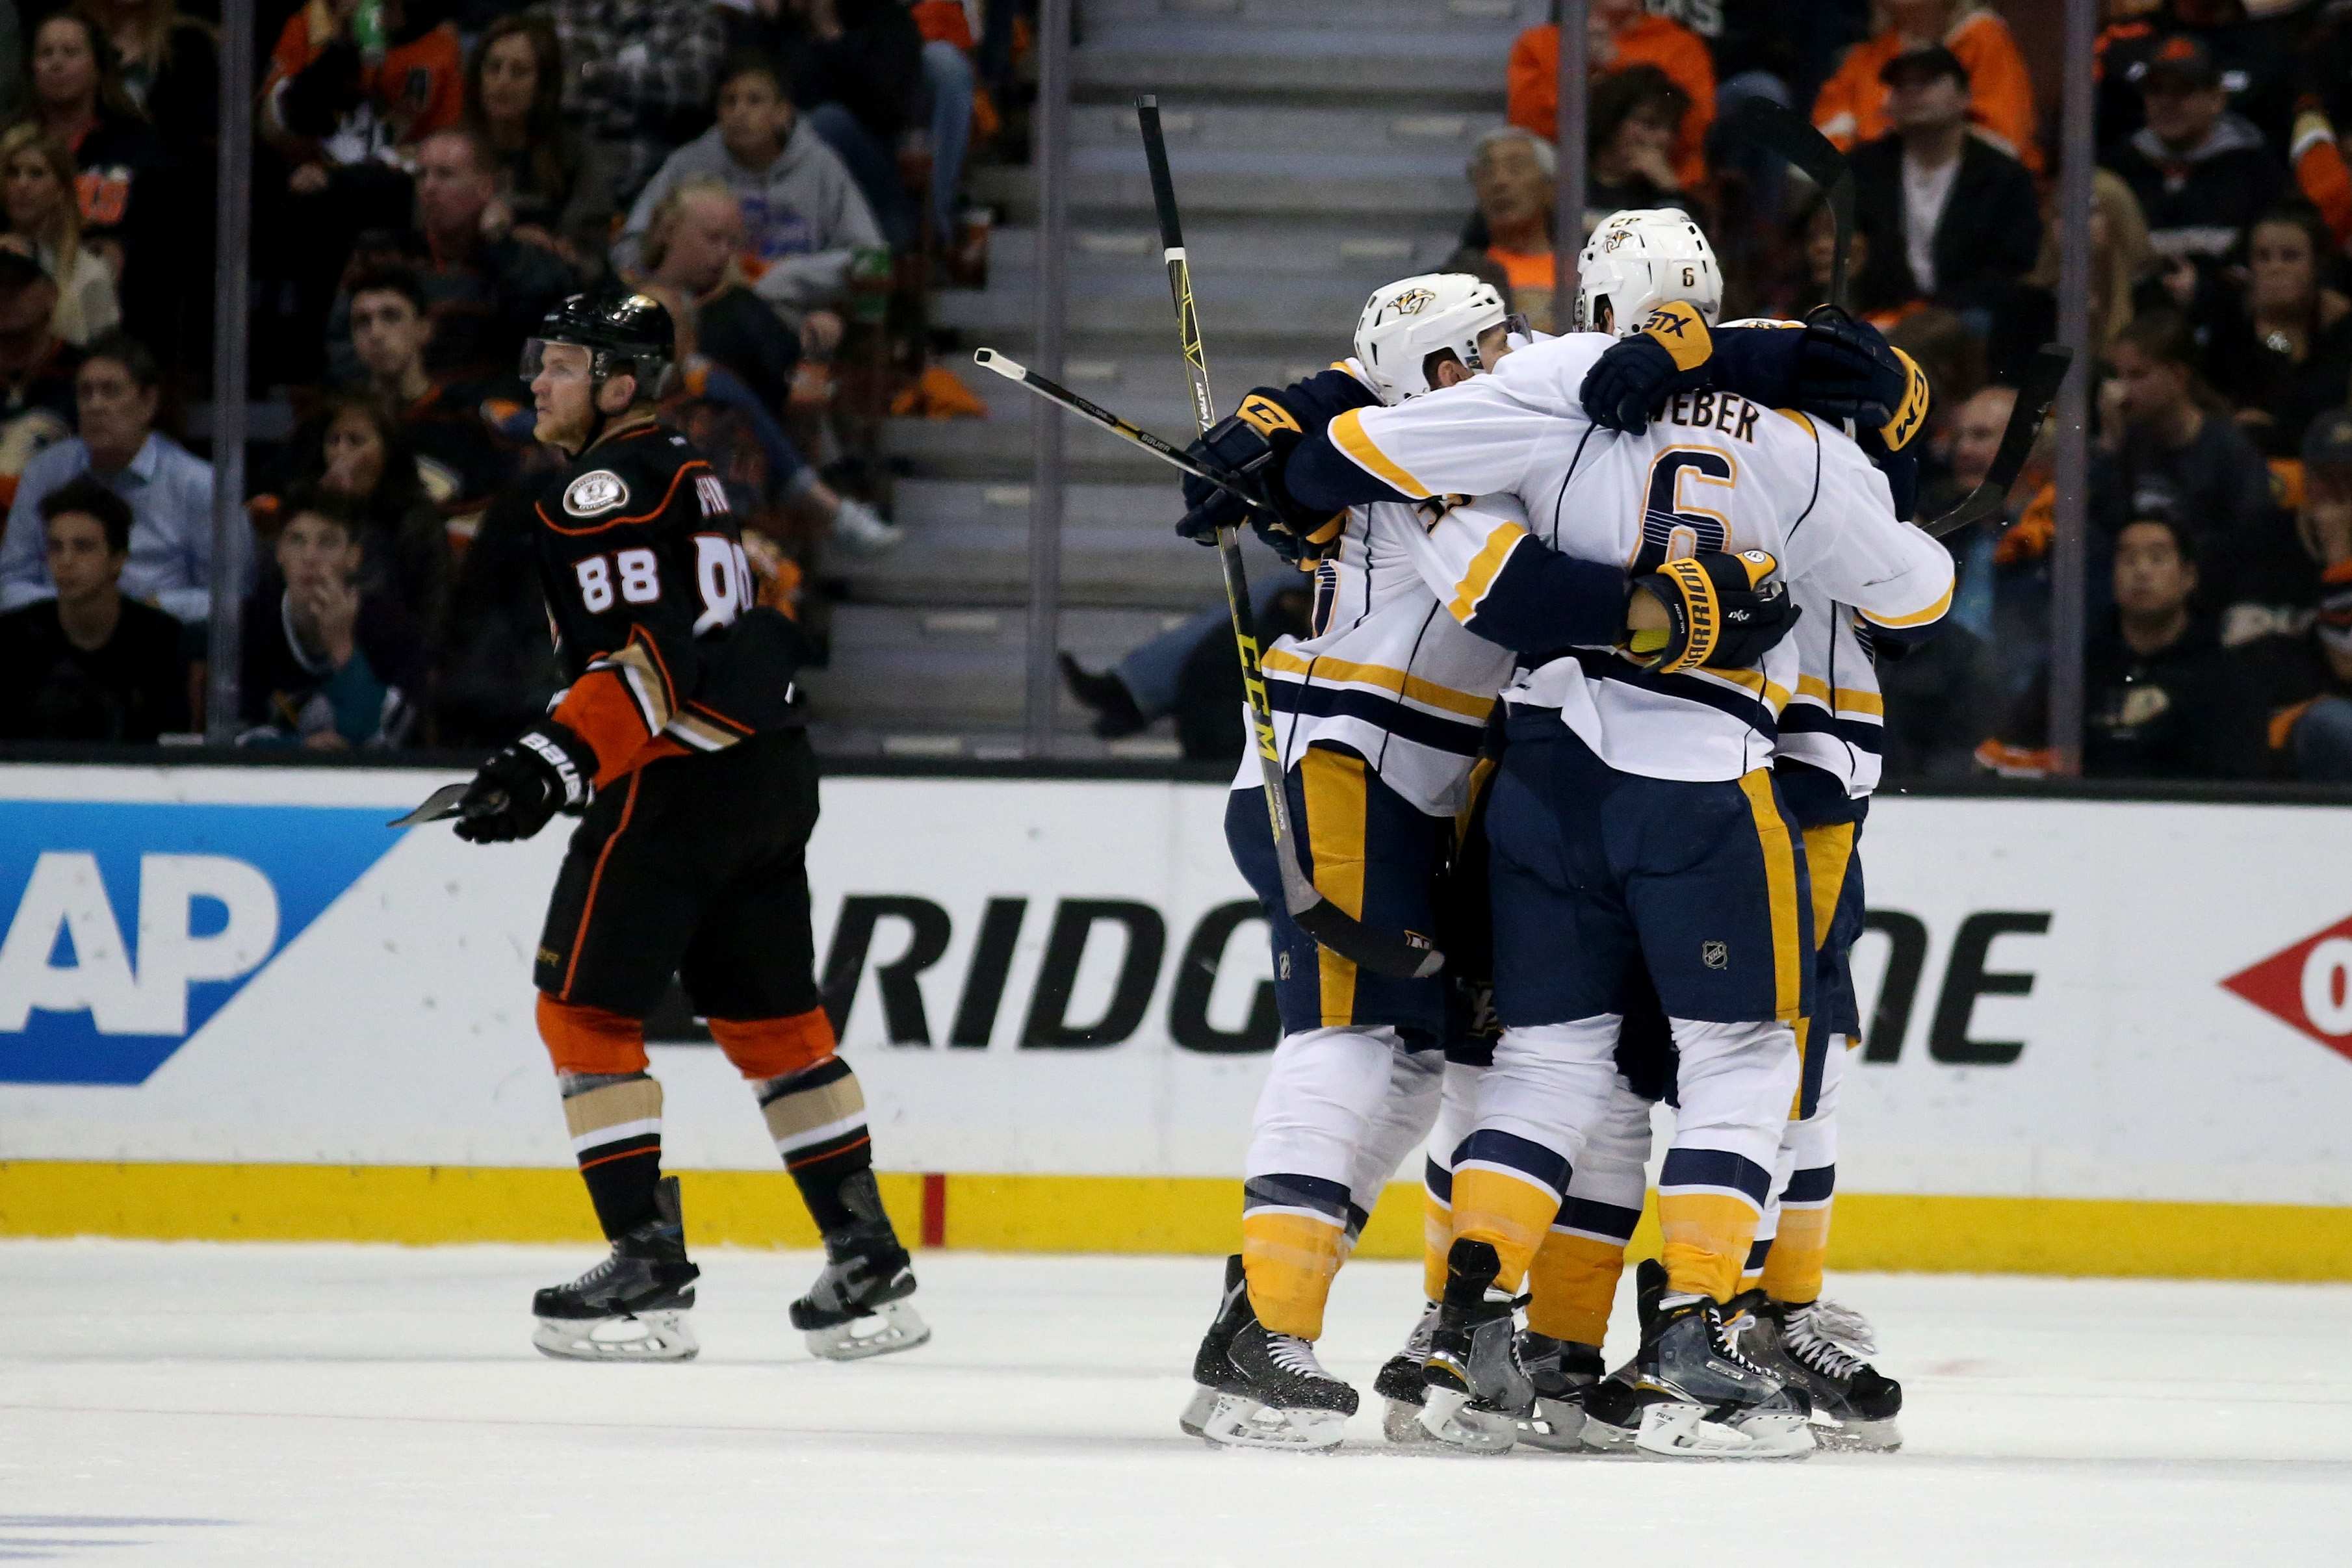 Predators advance to second round with Game 7 win over Ducks